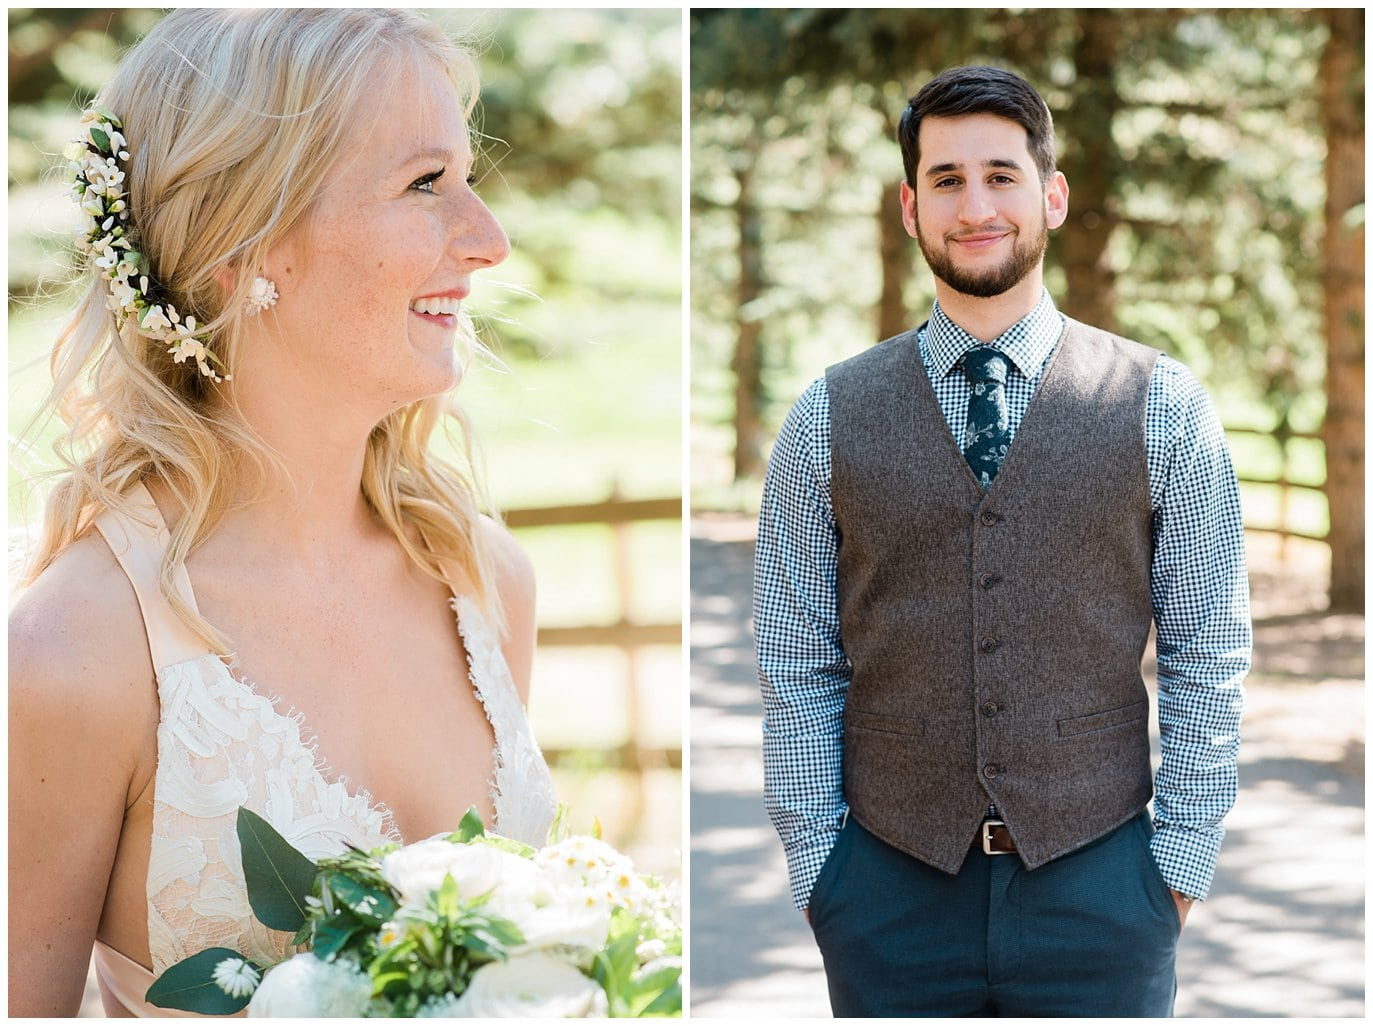 flower bridal hairpiece and groom with flowered tie at Deer Creek Valley Ranch wedding by Deer Creek Valley Ranch Wedding Photographer Jennie Crate Photographer